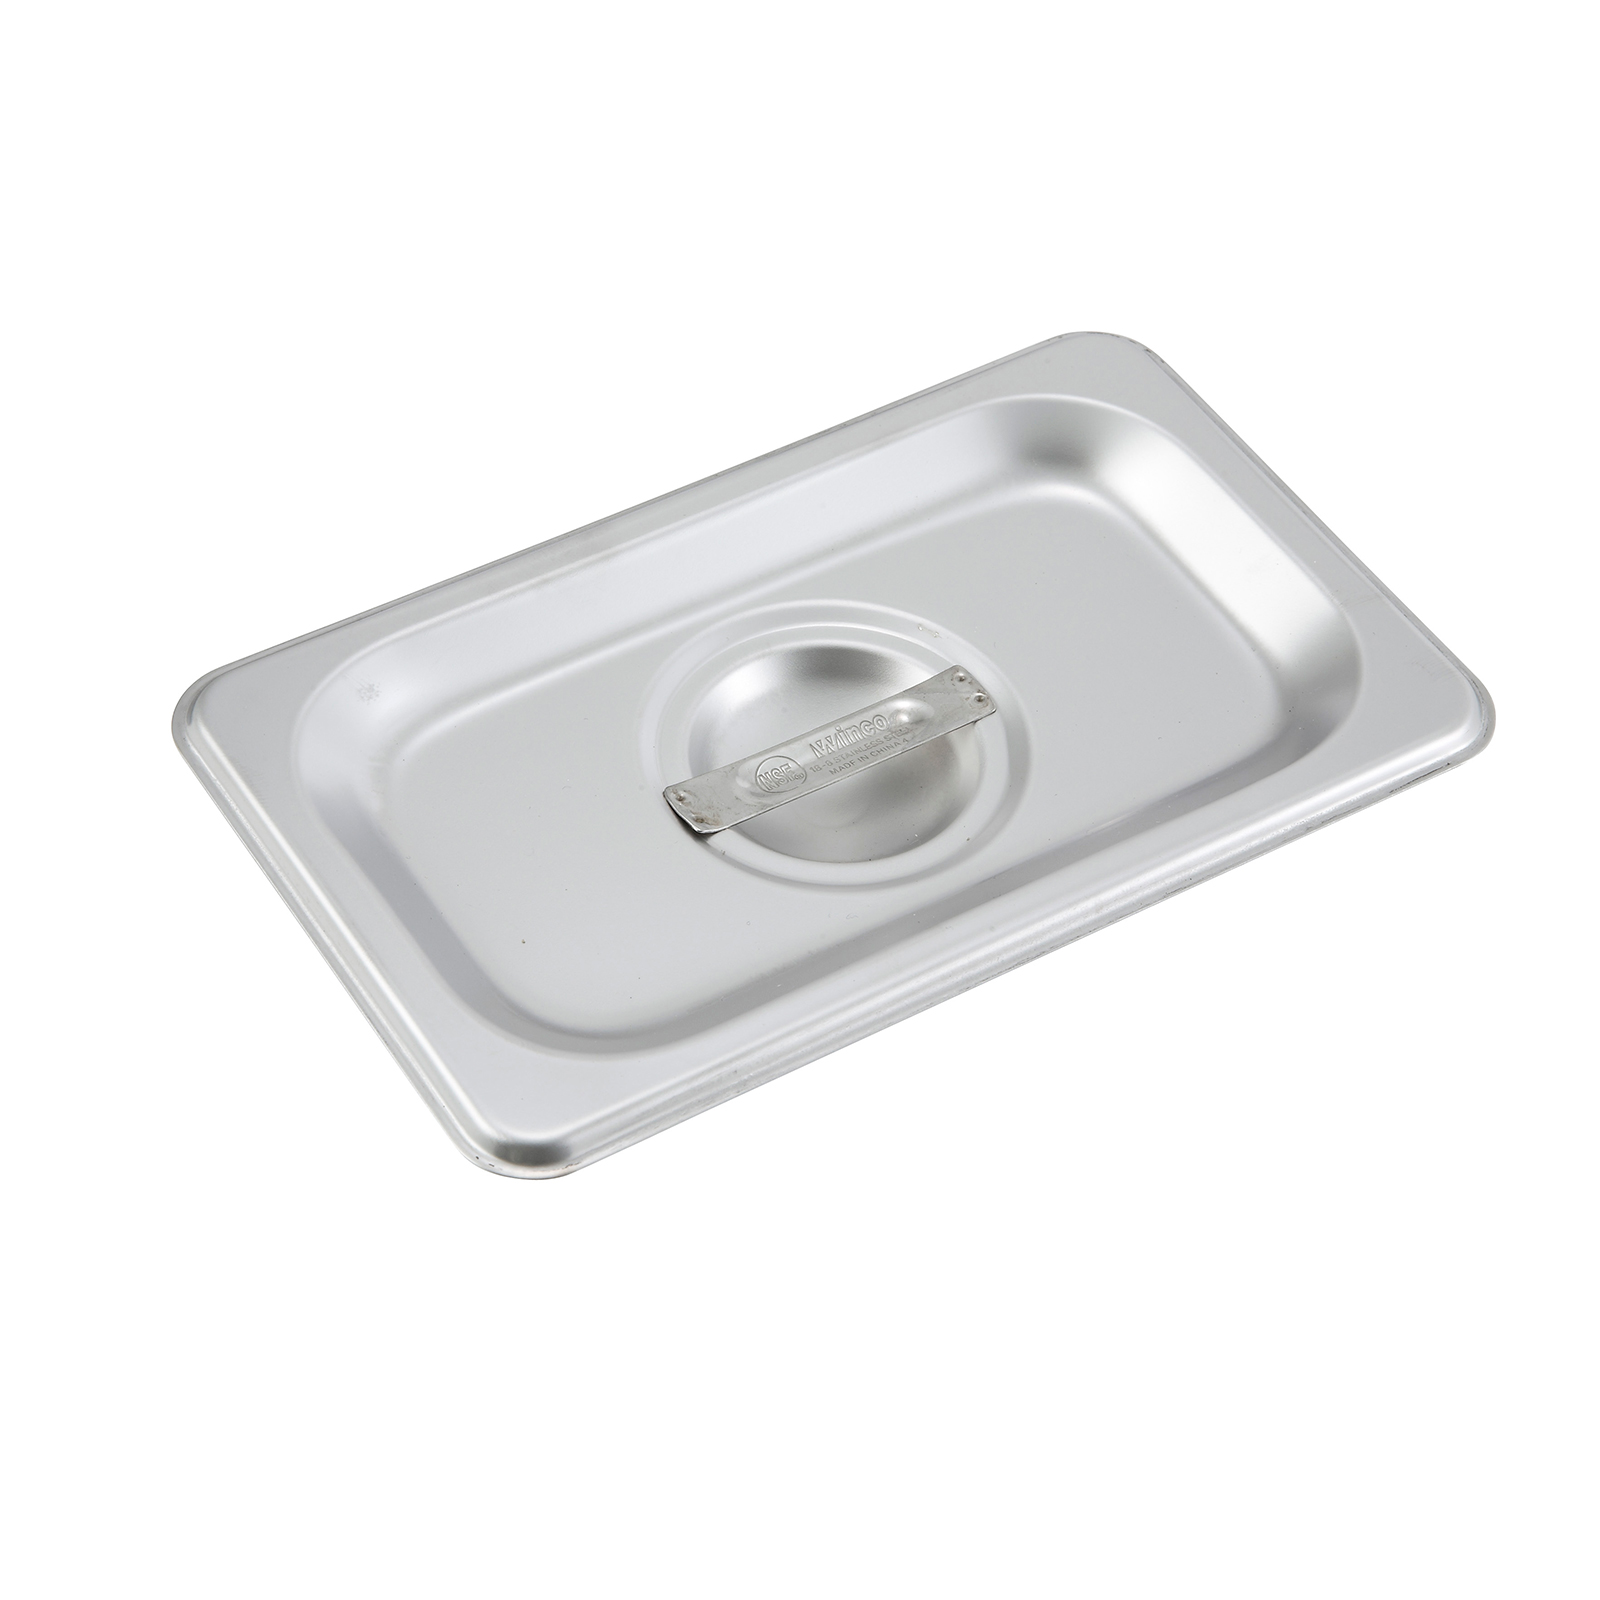 2400-129 Winco SPSCN steam table pan cover, stainless steel